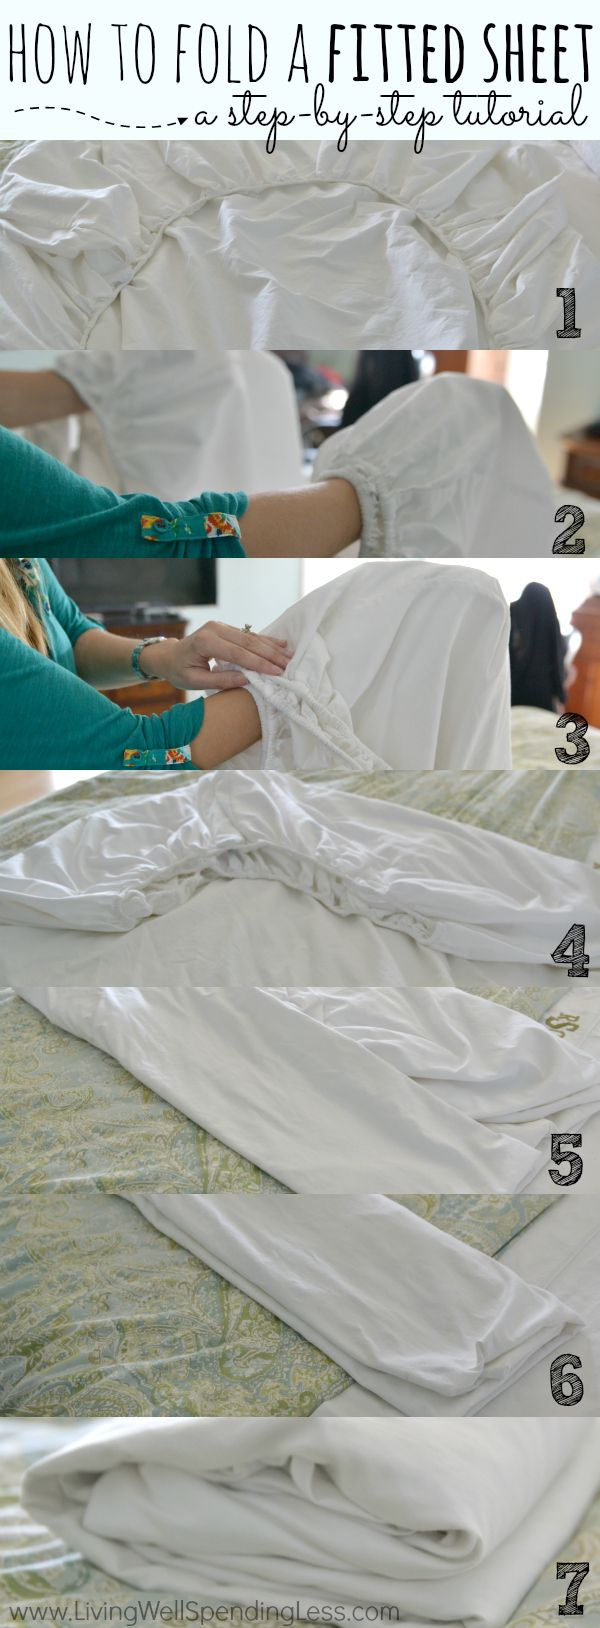 Have you ever attempted to fold up your freshly washed fitted sheet only to give up in frustration and simply roll it up in a ball? Don't despair! While those corners might seem tricky, they really aren't as hard as they look. Here's a simple step-by-step tutorial for getting the job done: